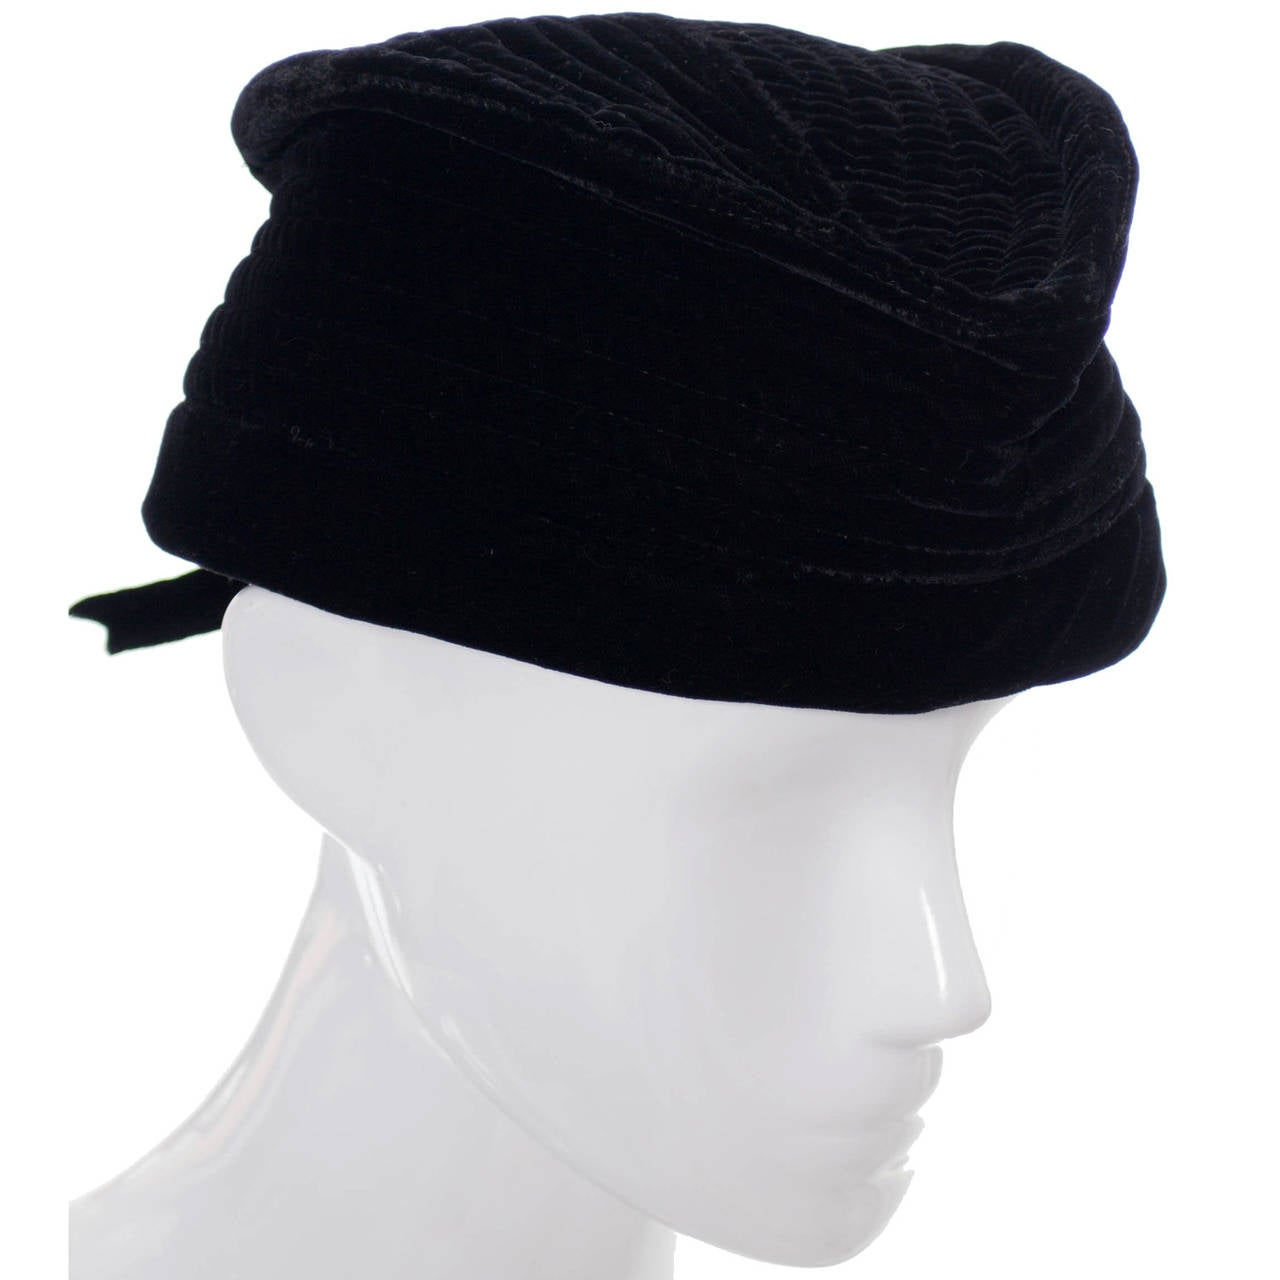 This exceptional vintage Valentino Garavani Boutique hat is in pristine condition and has beautiful rows of top stitching and a pretty bow in the back. The hat is made of black velvet and is marked as a European size 56, which converts to a US size